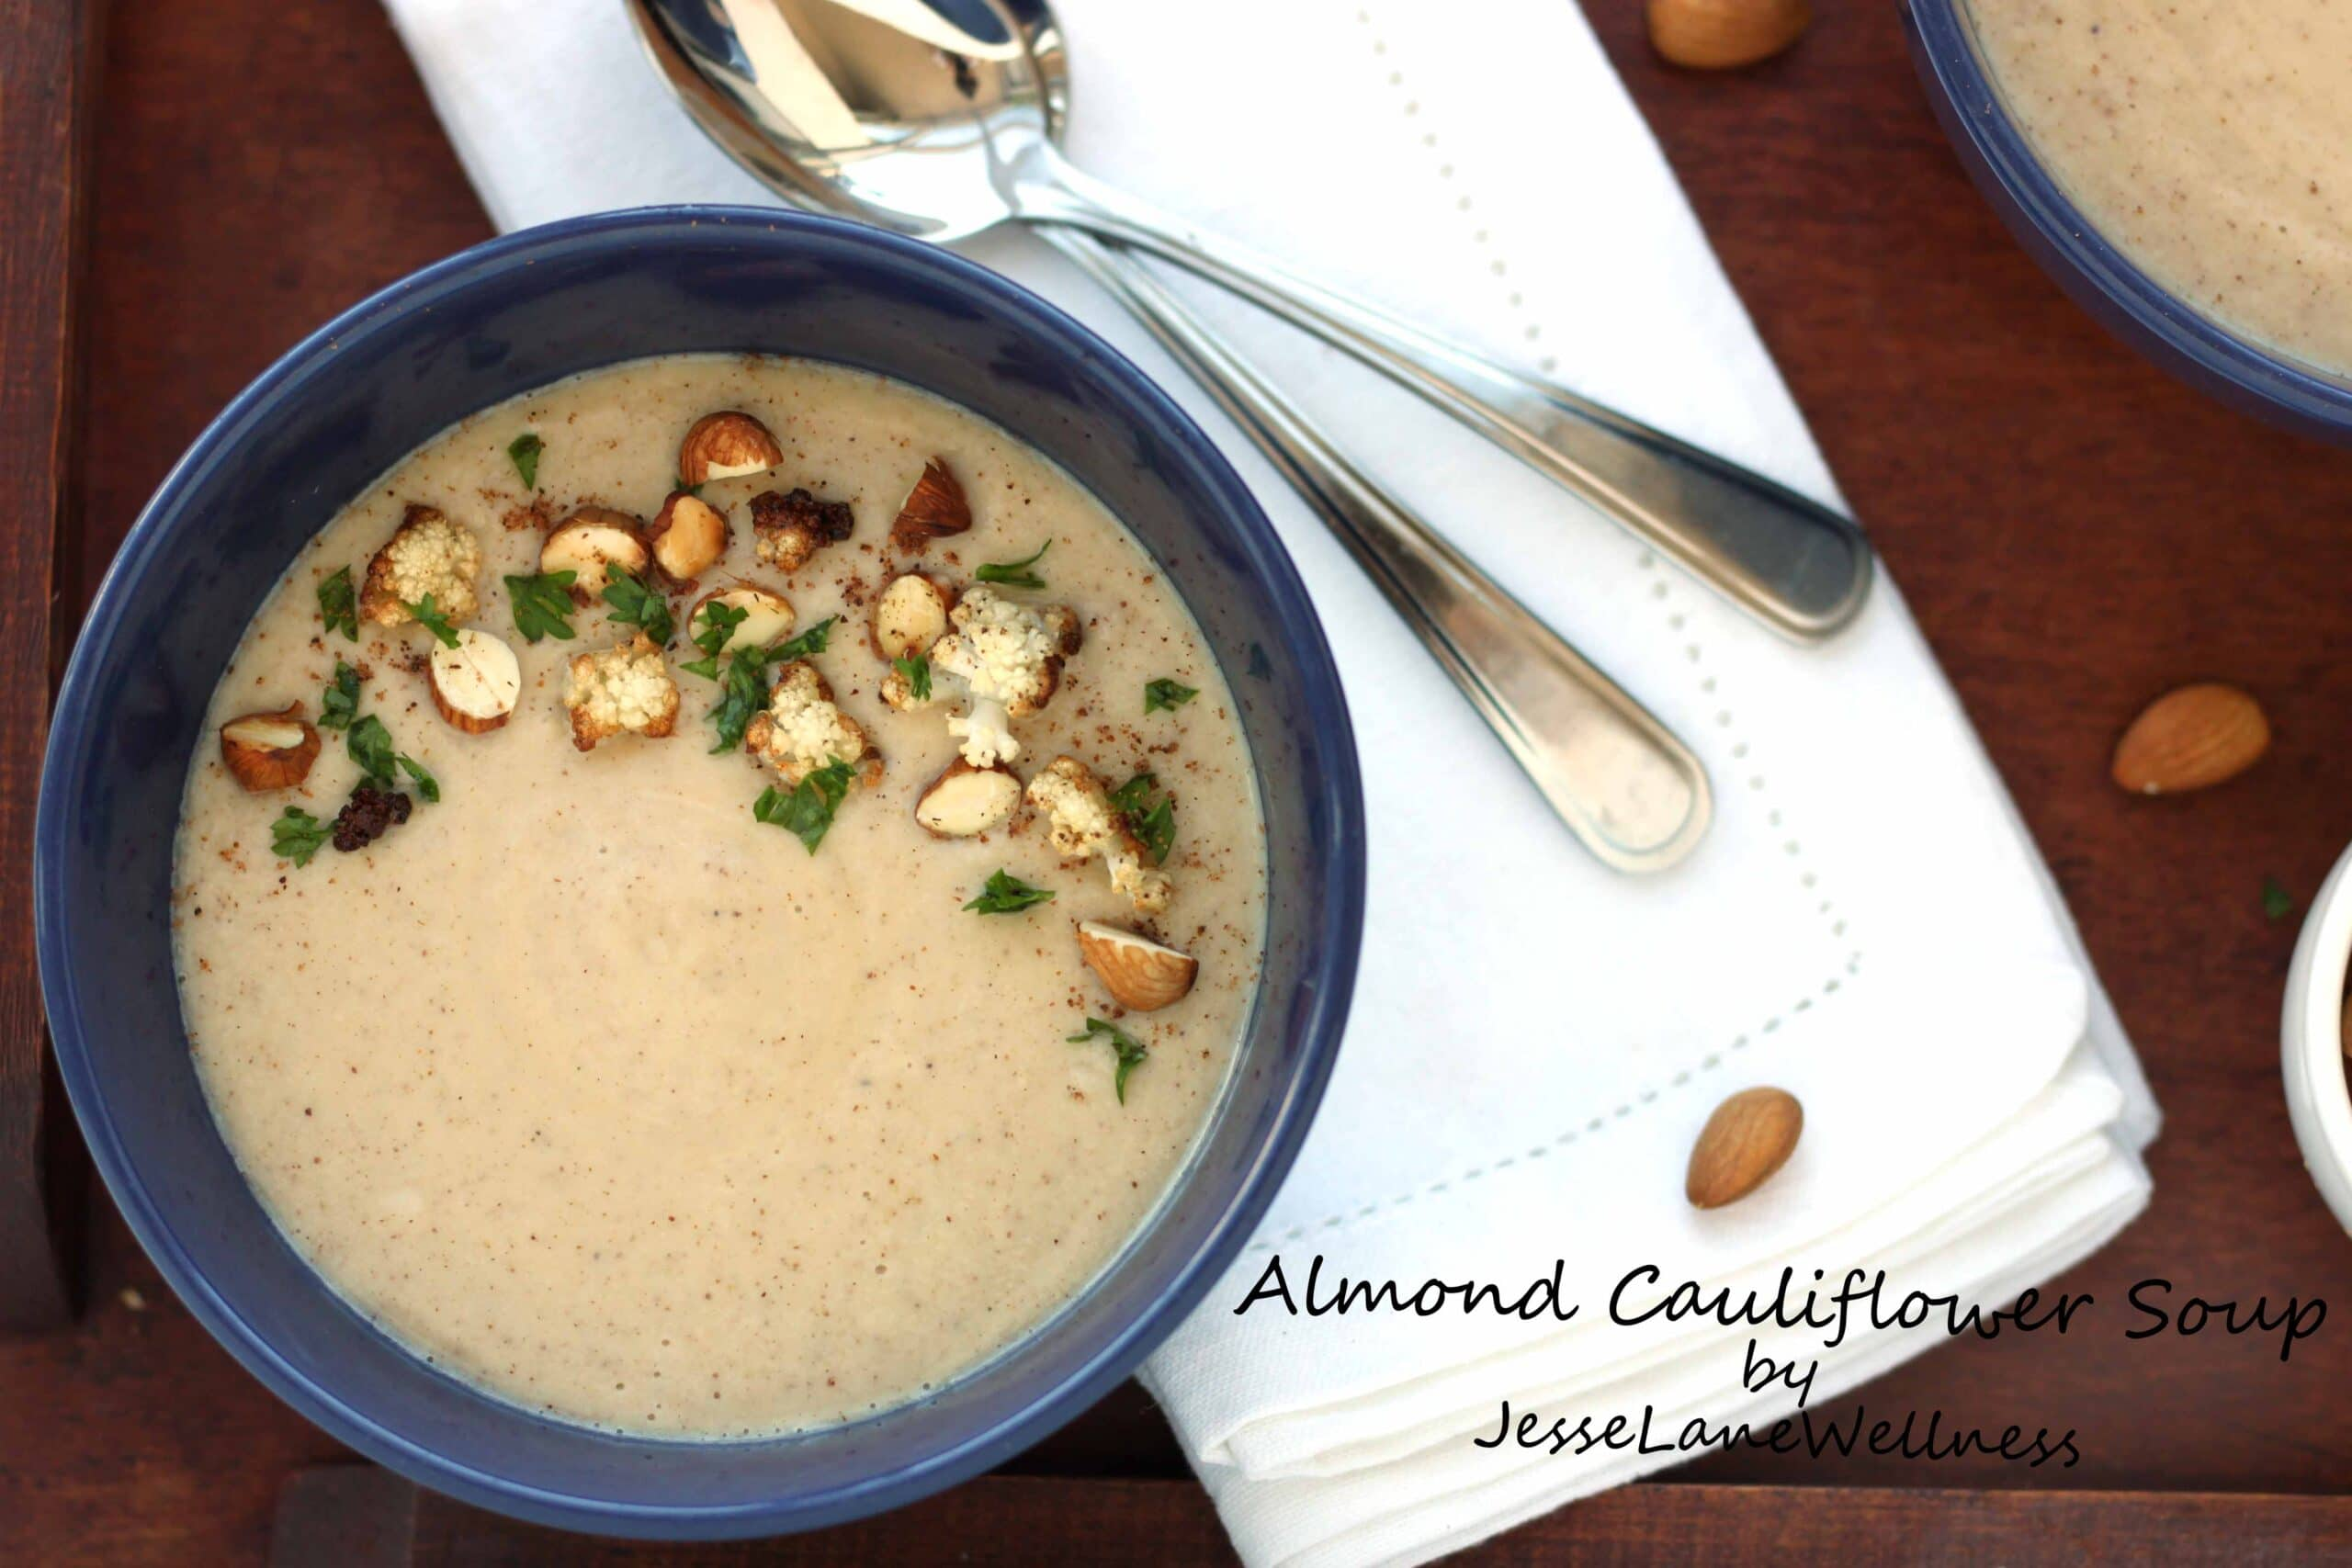 Almond Cauliflower Soup by @jesselwellness #healthysoup #cauliflowersoup